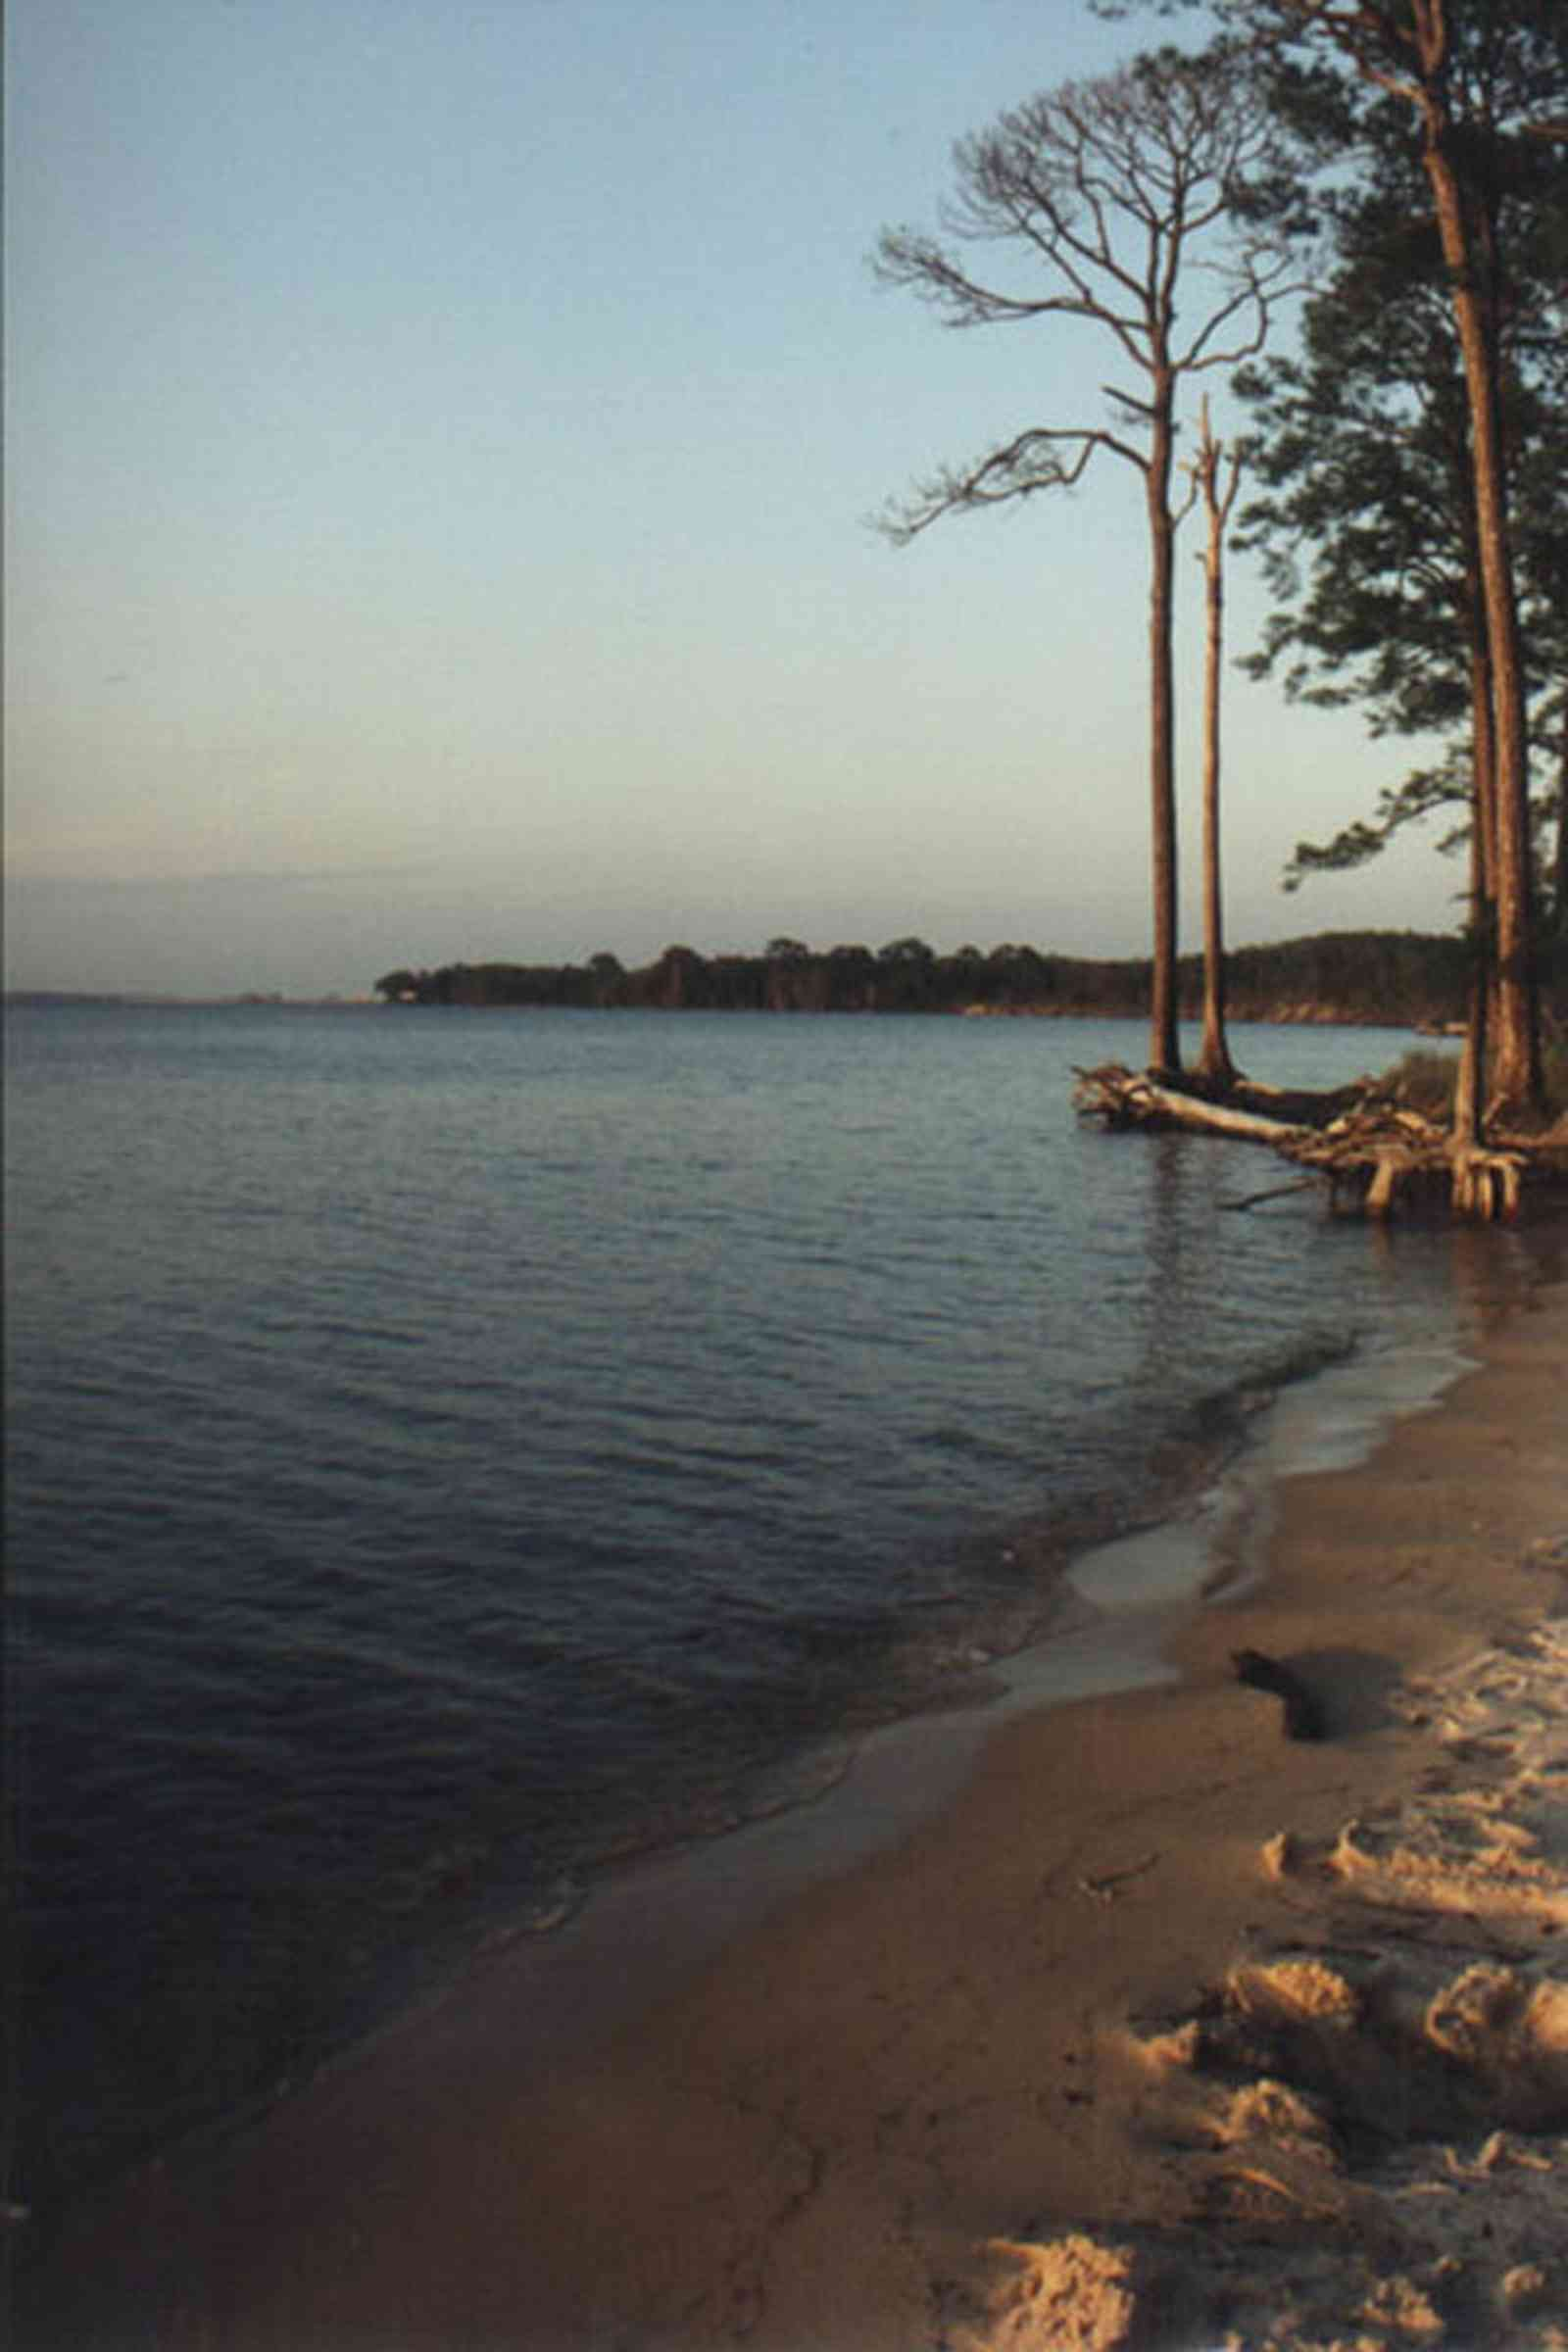 Gulf-Islands-National-Seashore:-Butcherpin-Cove_trees.jpg:  gulf coast, gulf of mexico, pensacola bay, short-leaf pine tree, bay, sand, sound